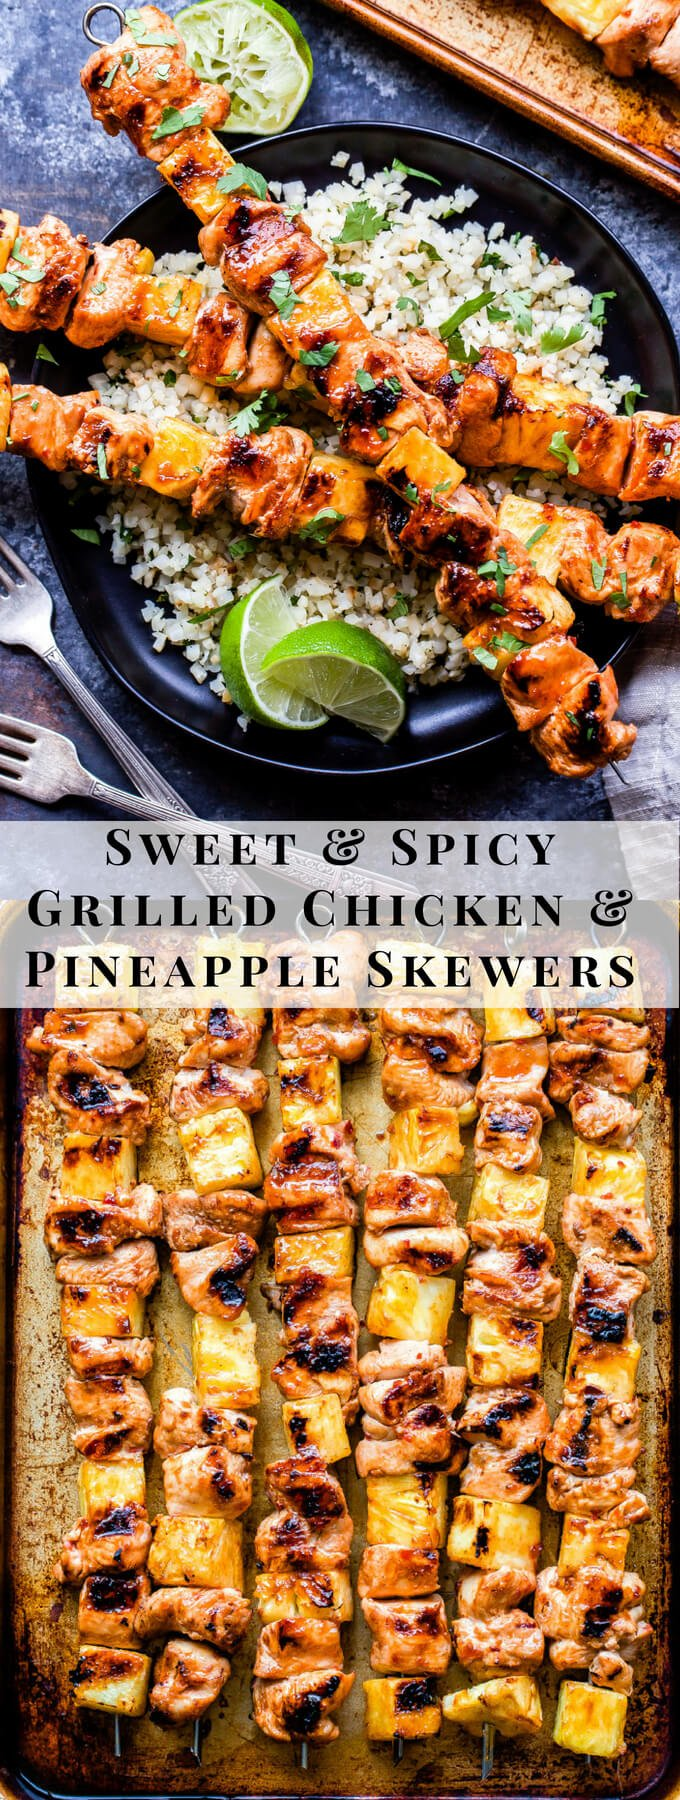 Sweet and Spicy Grilled Chicken and Pineapple Skewers will be your go-to dinner all summer long! Flavored with chili garlic sauce and sweetened with honey, these paleo and gluten-free chicken skewers are perfect for a protein packed, healthy dinner! #chicken #pineapple #skewers #paleo #glutenfree #healthydinner #grilledchicken